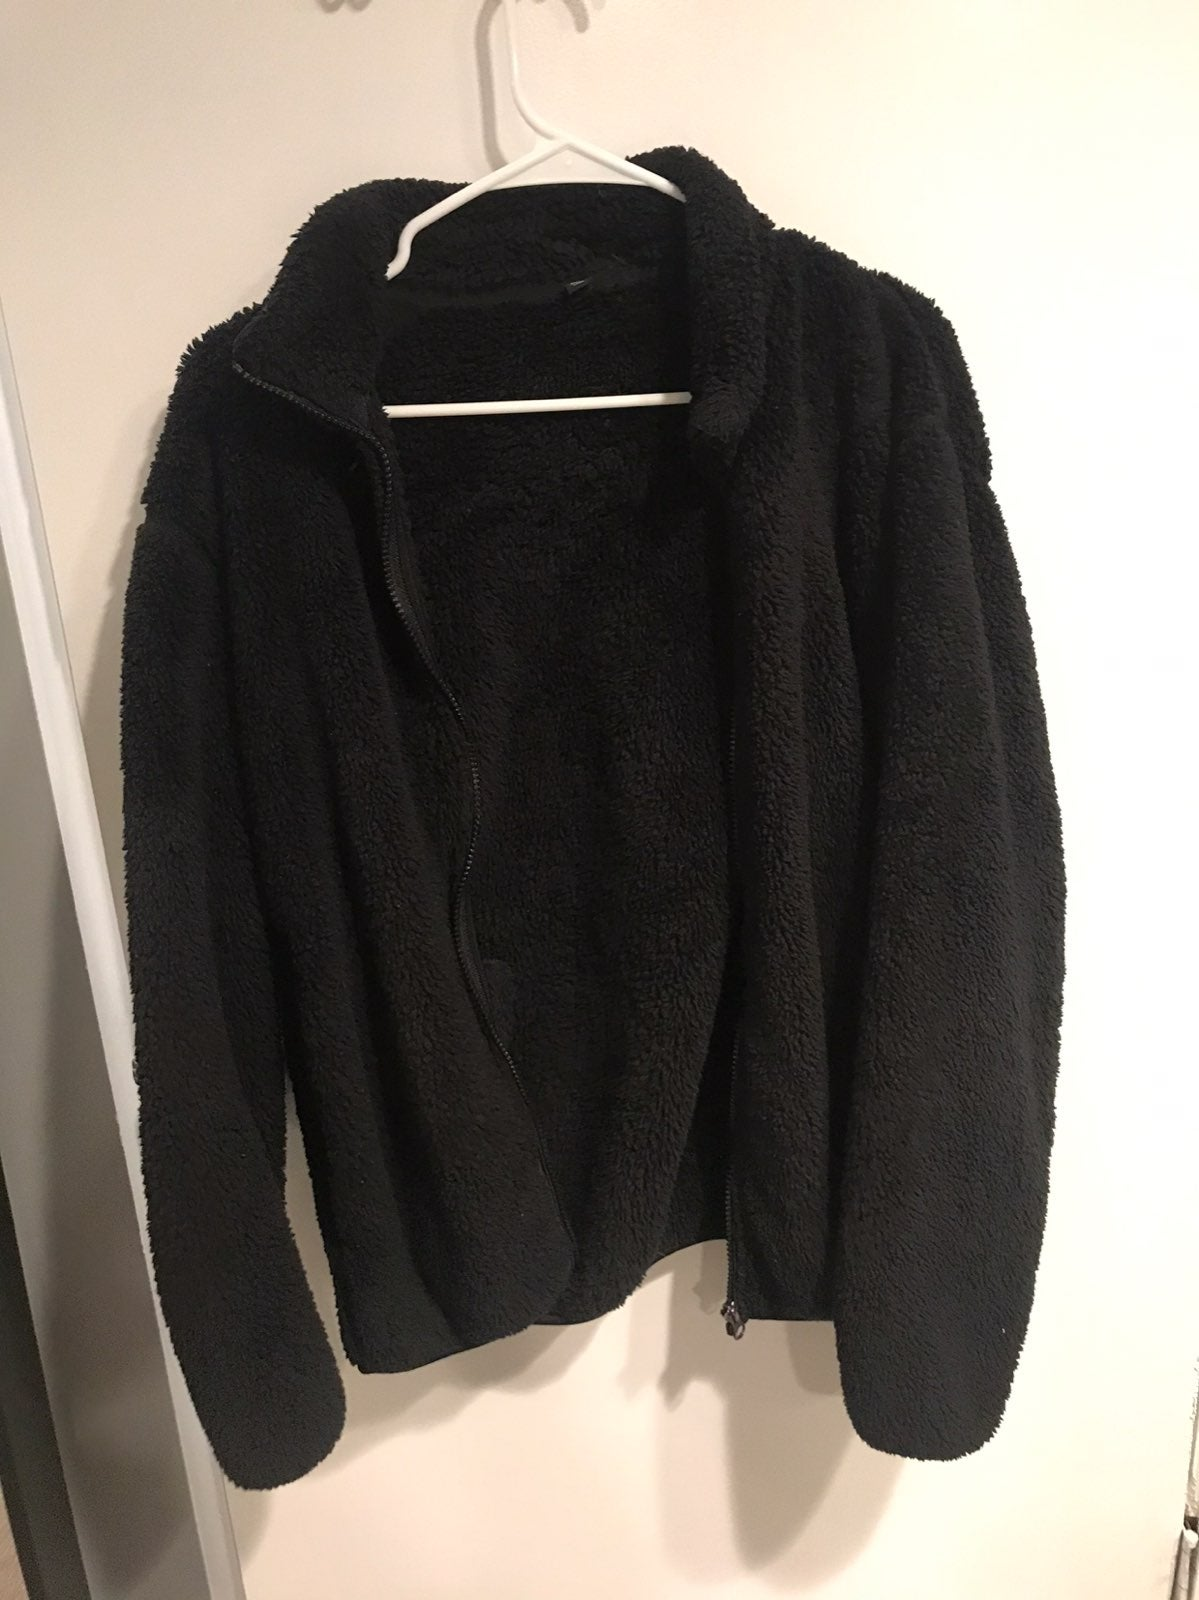 Uniqlo Zip Up Sweater